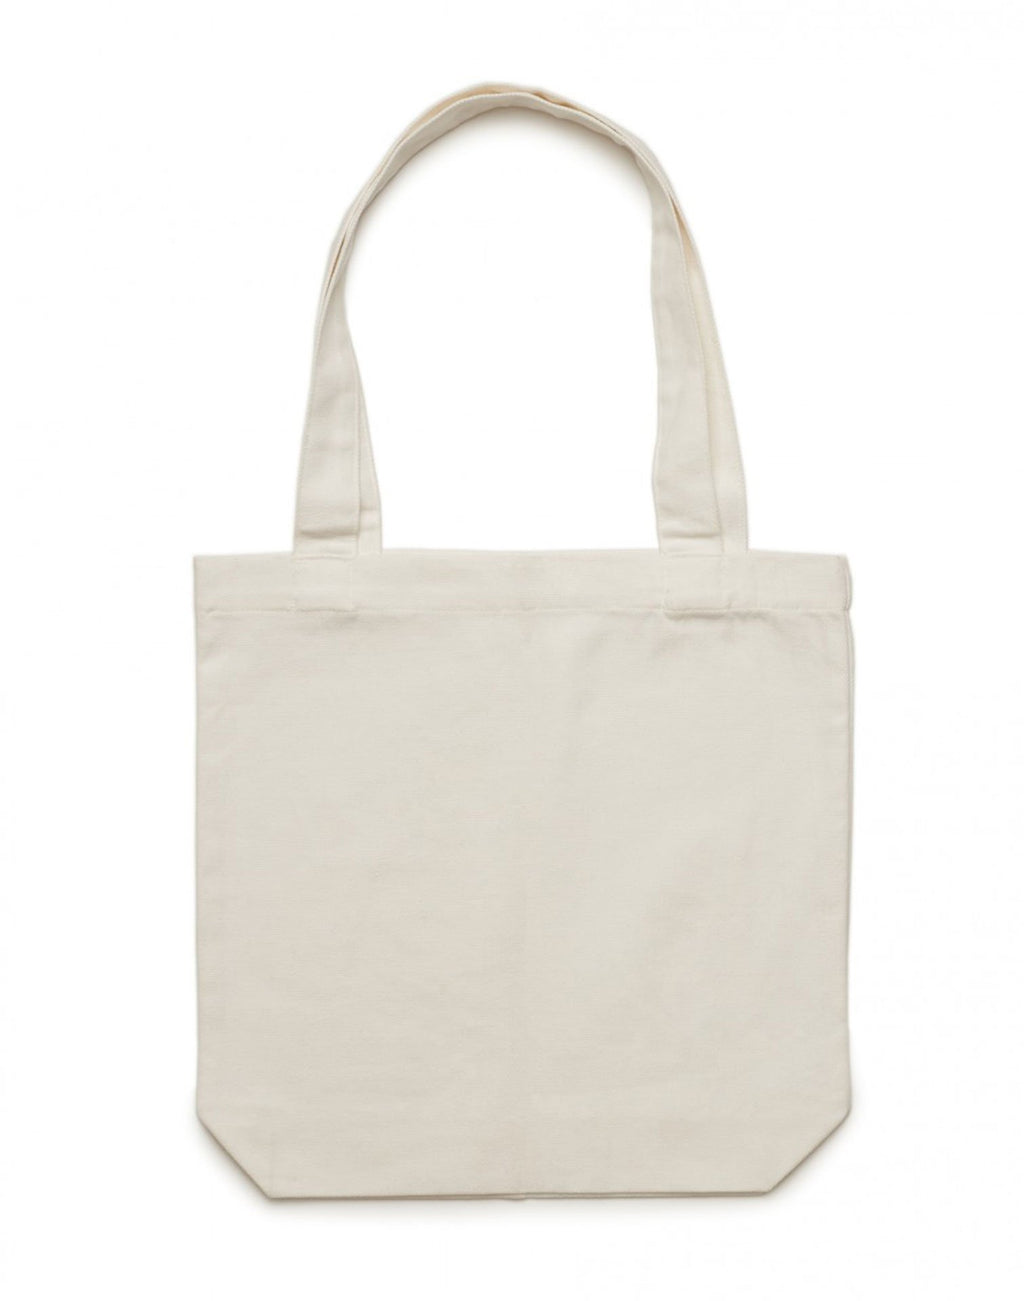 Life Behind Bars Tote Bag